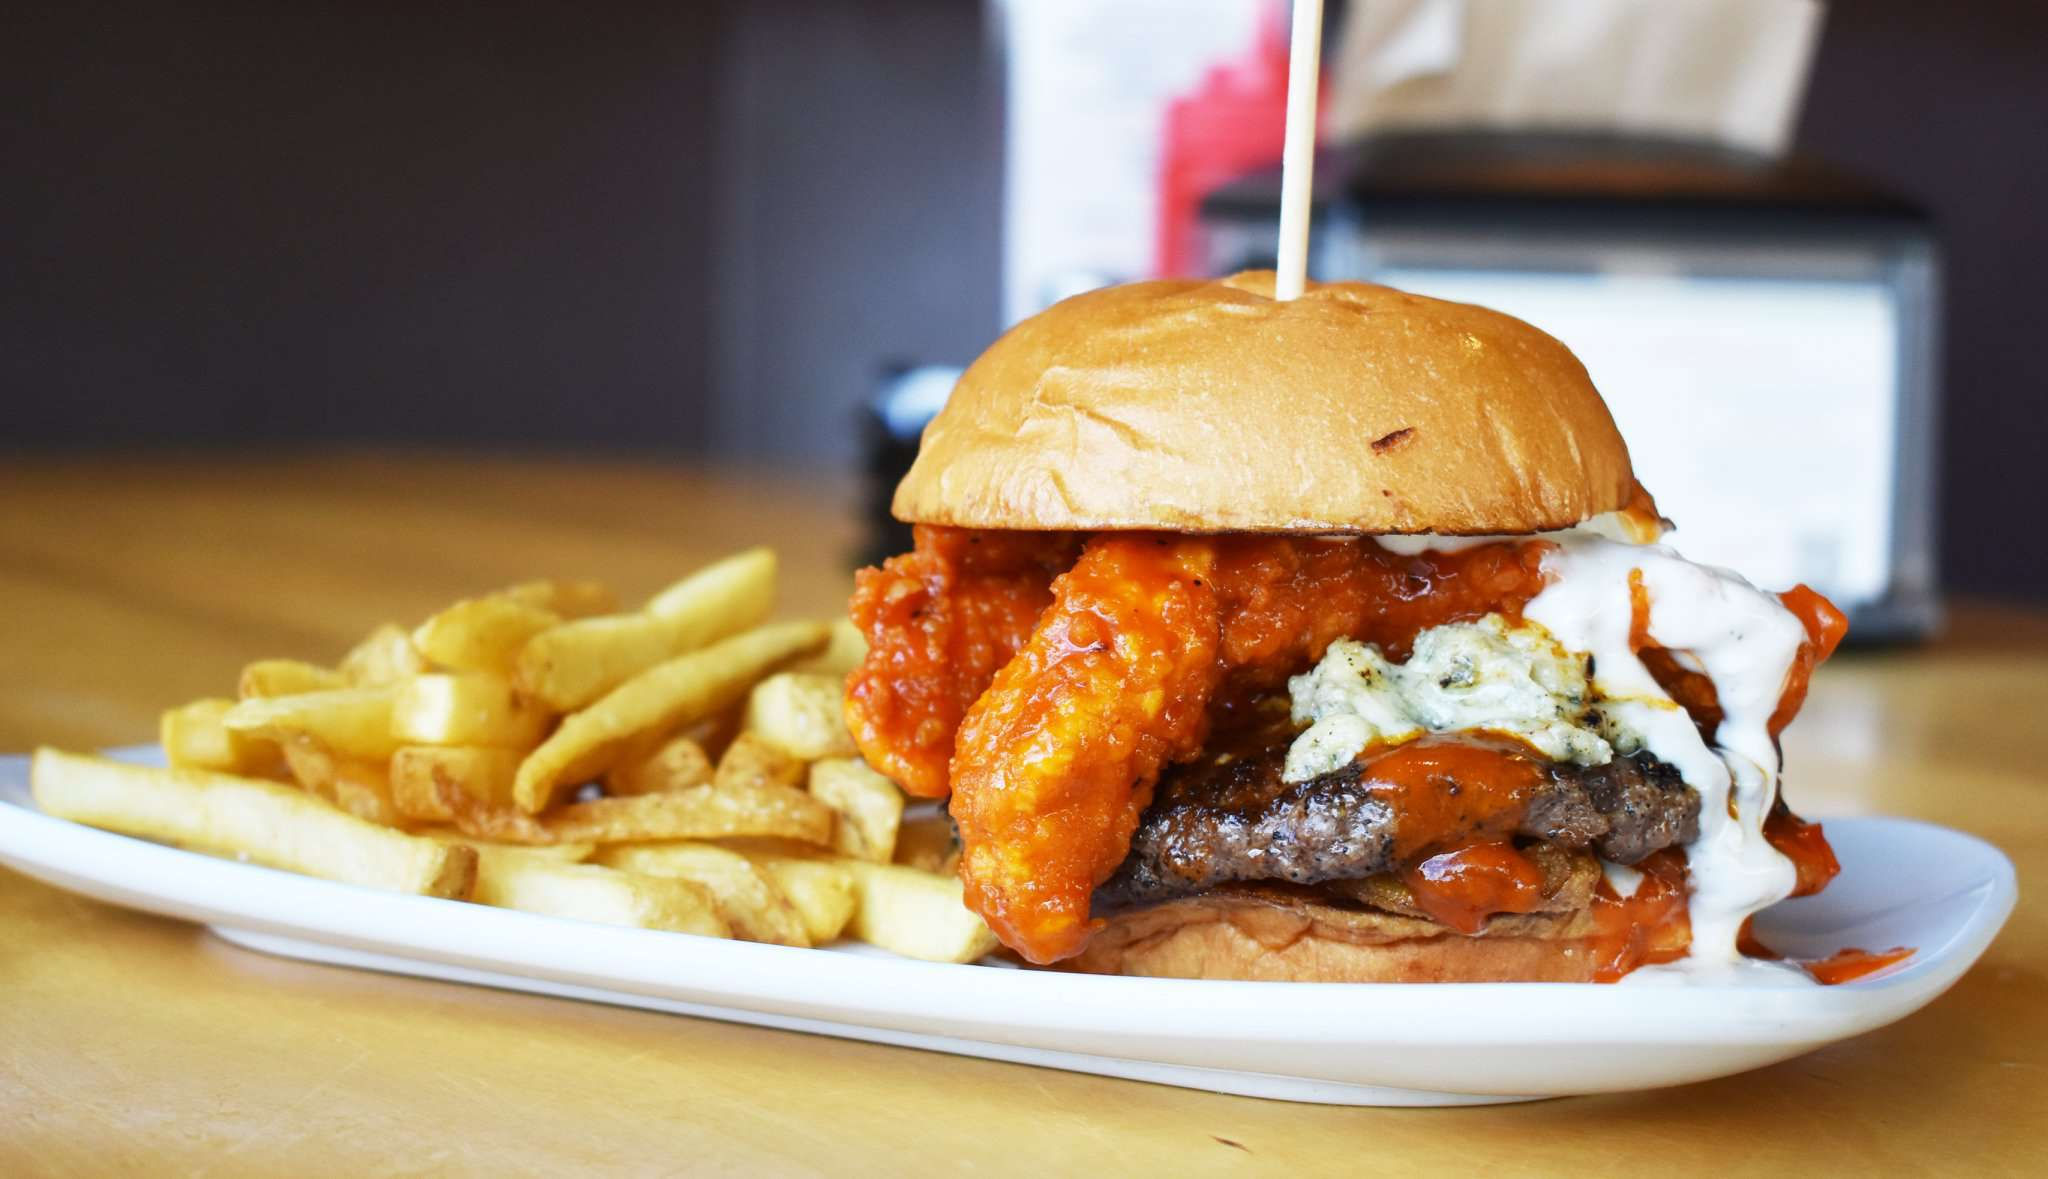 burger with buffalo chicken strips and blue cheese next to some french fries